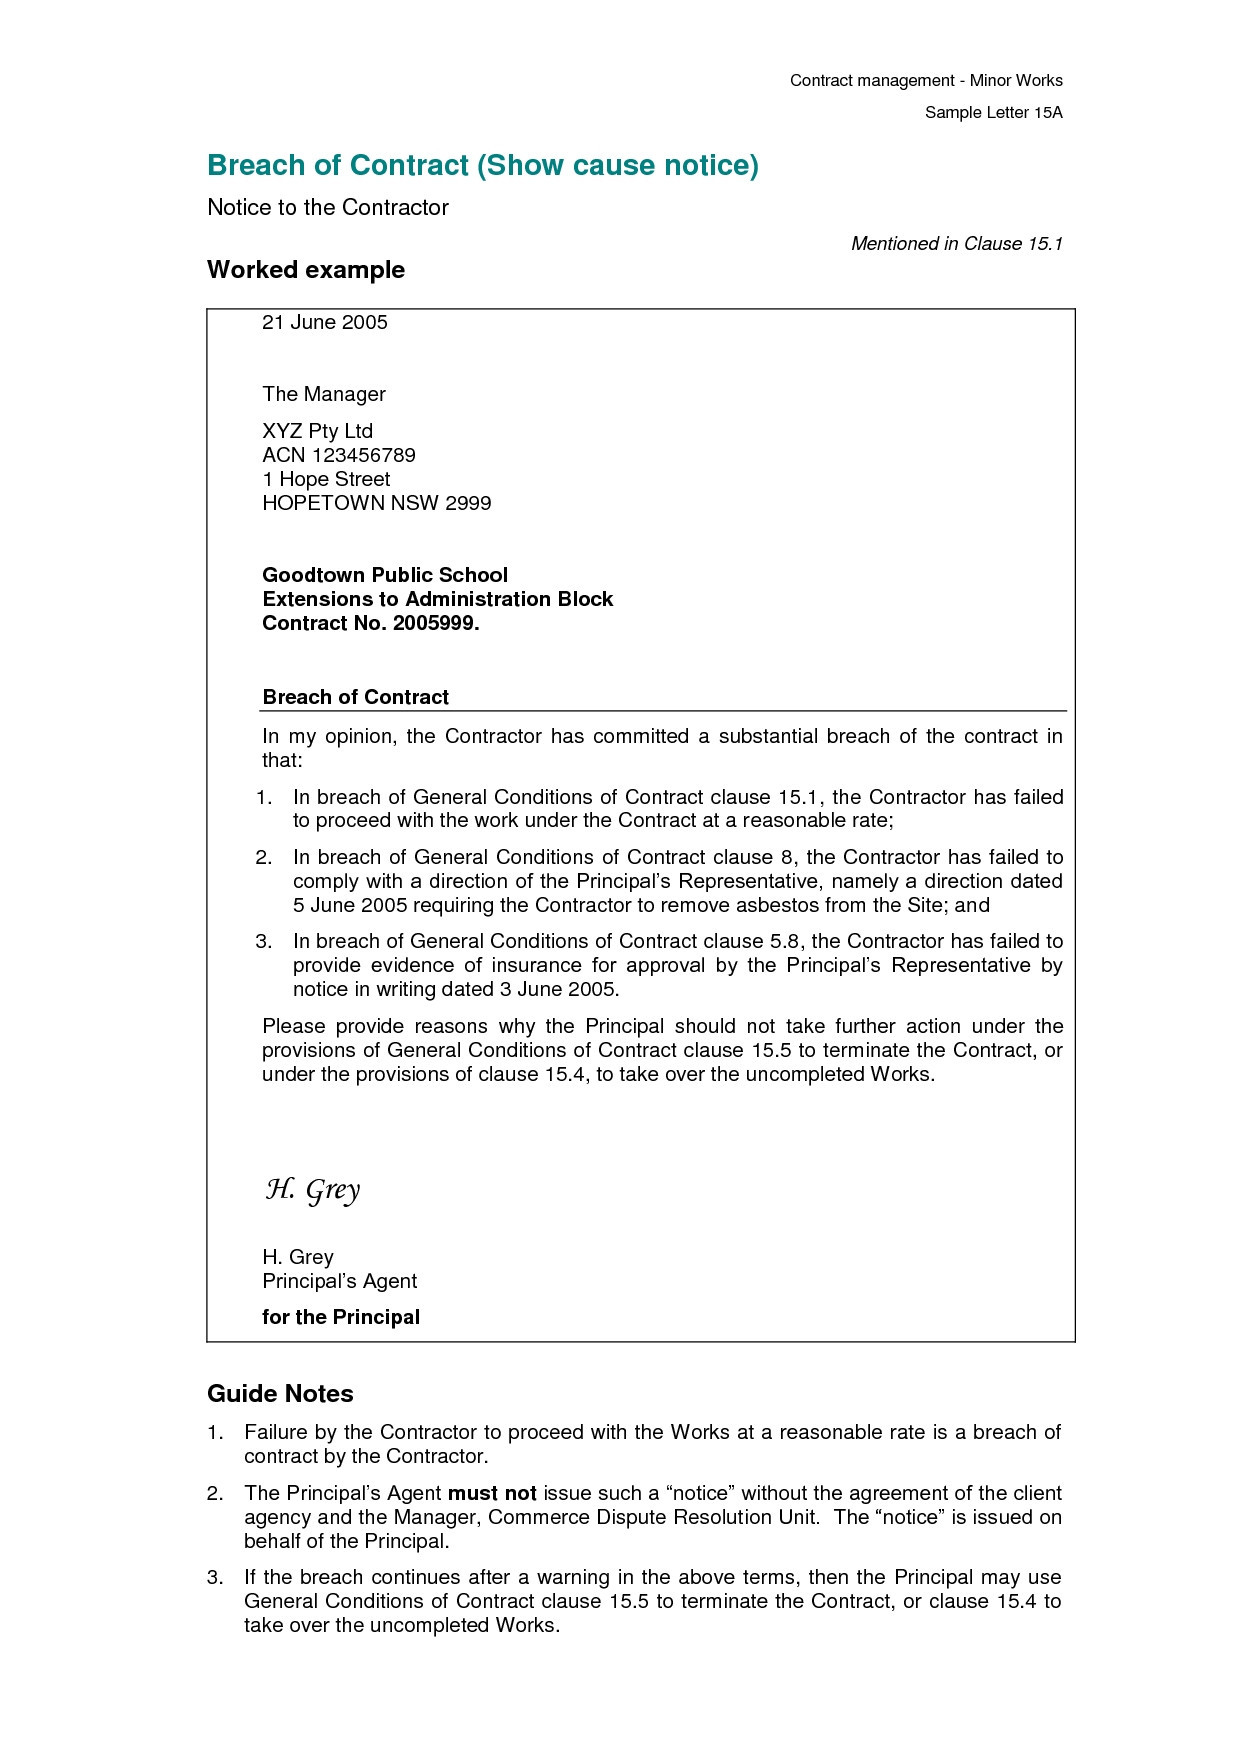 Notice Of Breach Of Contract Letter Template - 37 Unique Sample Breach Contract Letter